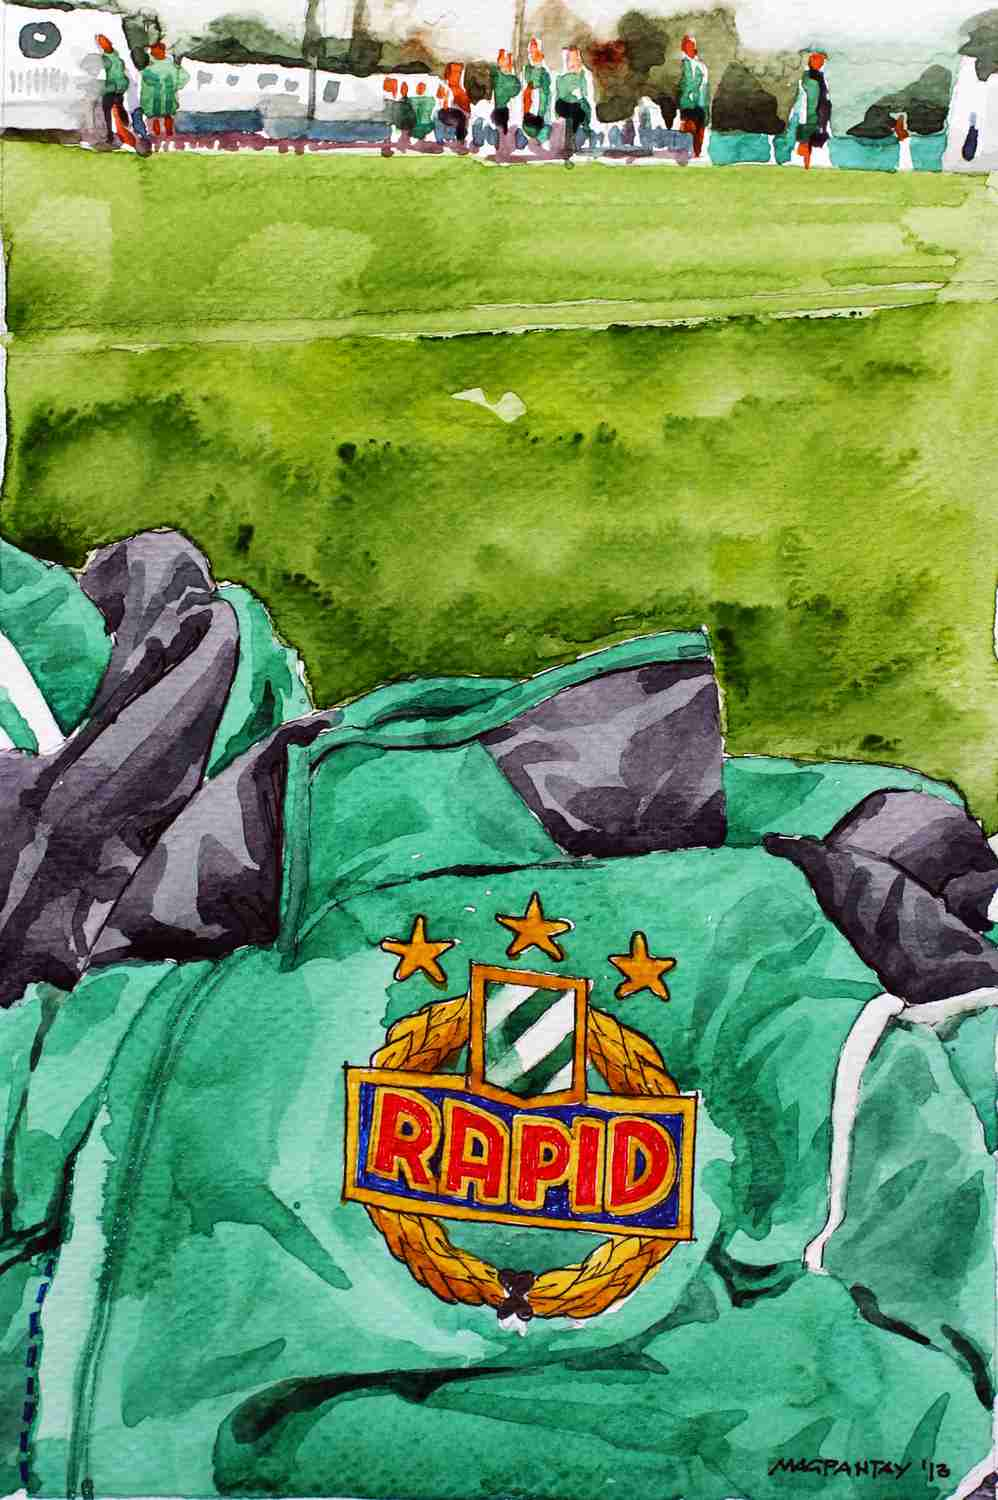 _Wappen Rapid Wien am Trainingsplatz